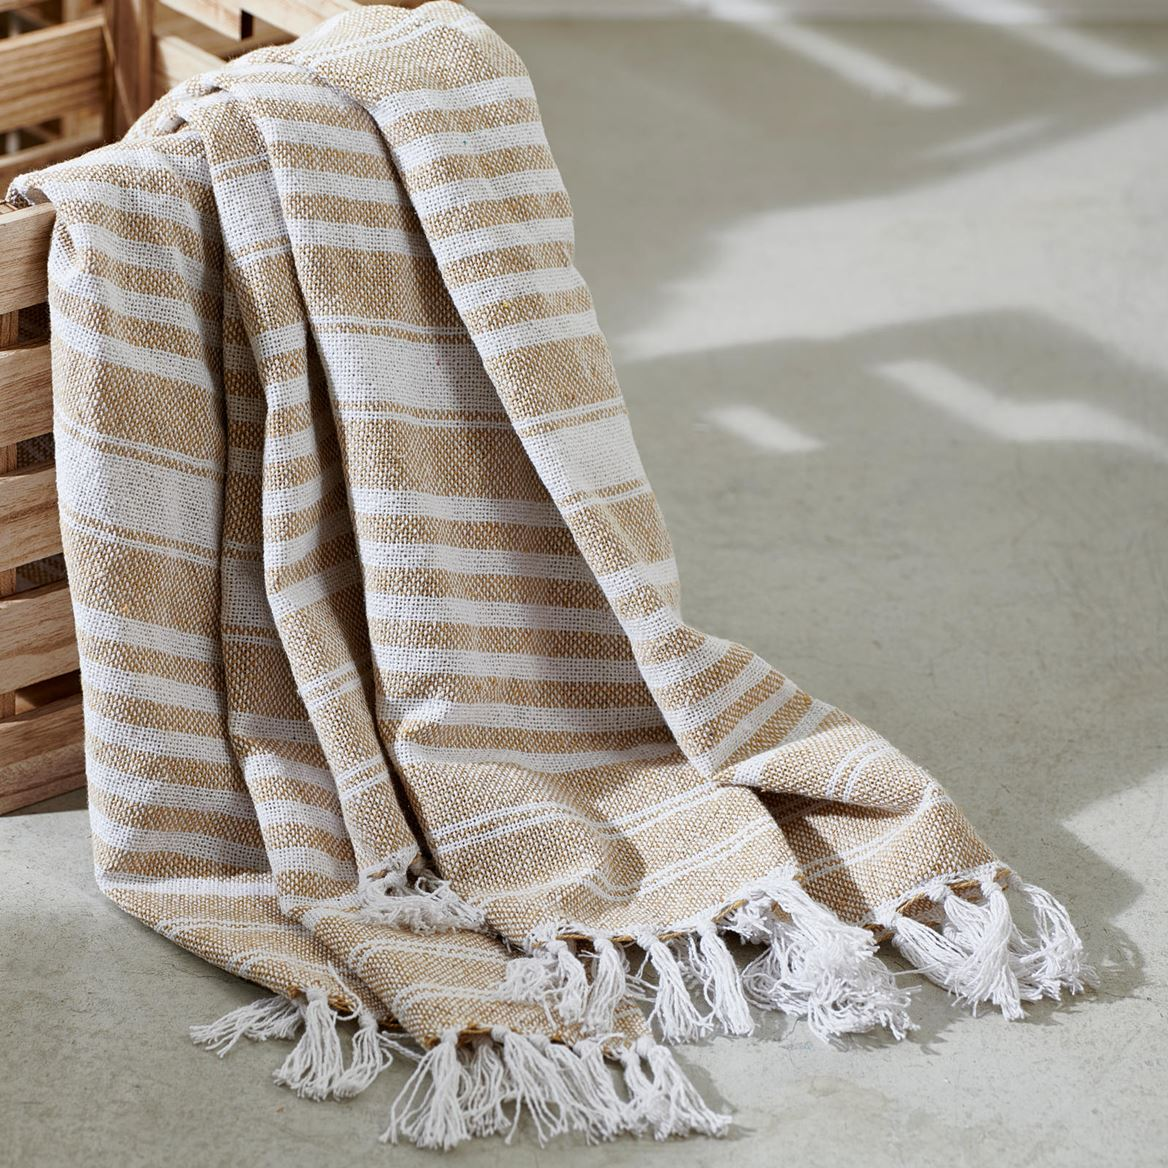 MANU Plaid naturel B 125 x L 150 cm_manu-plaid-naturel-b-125-x-l-150-cm